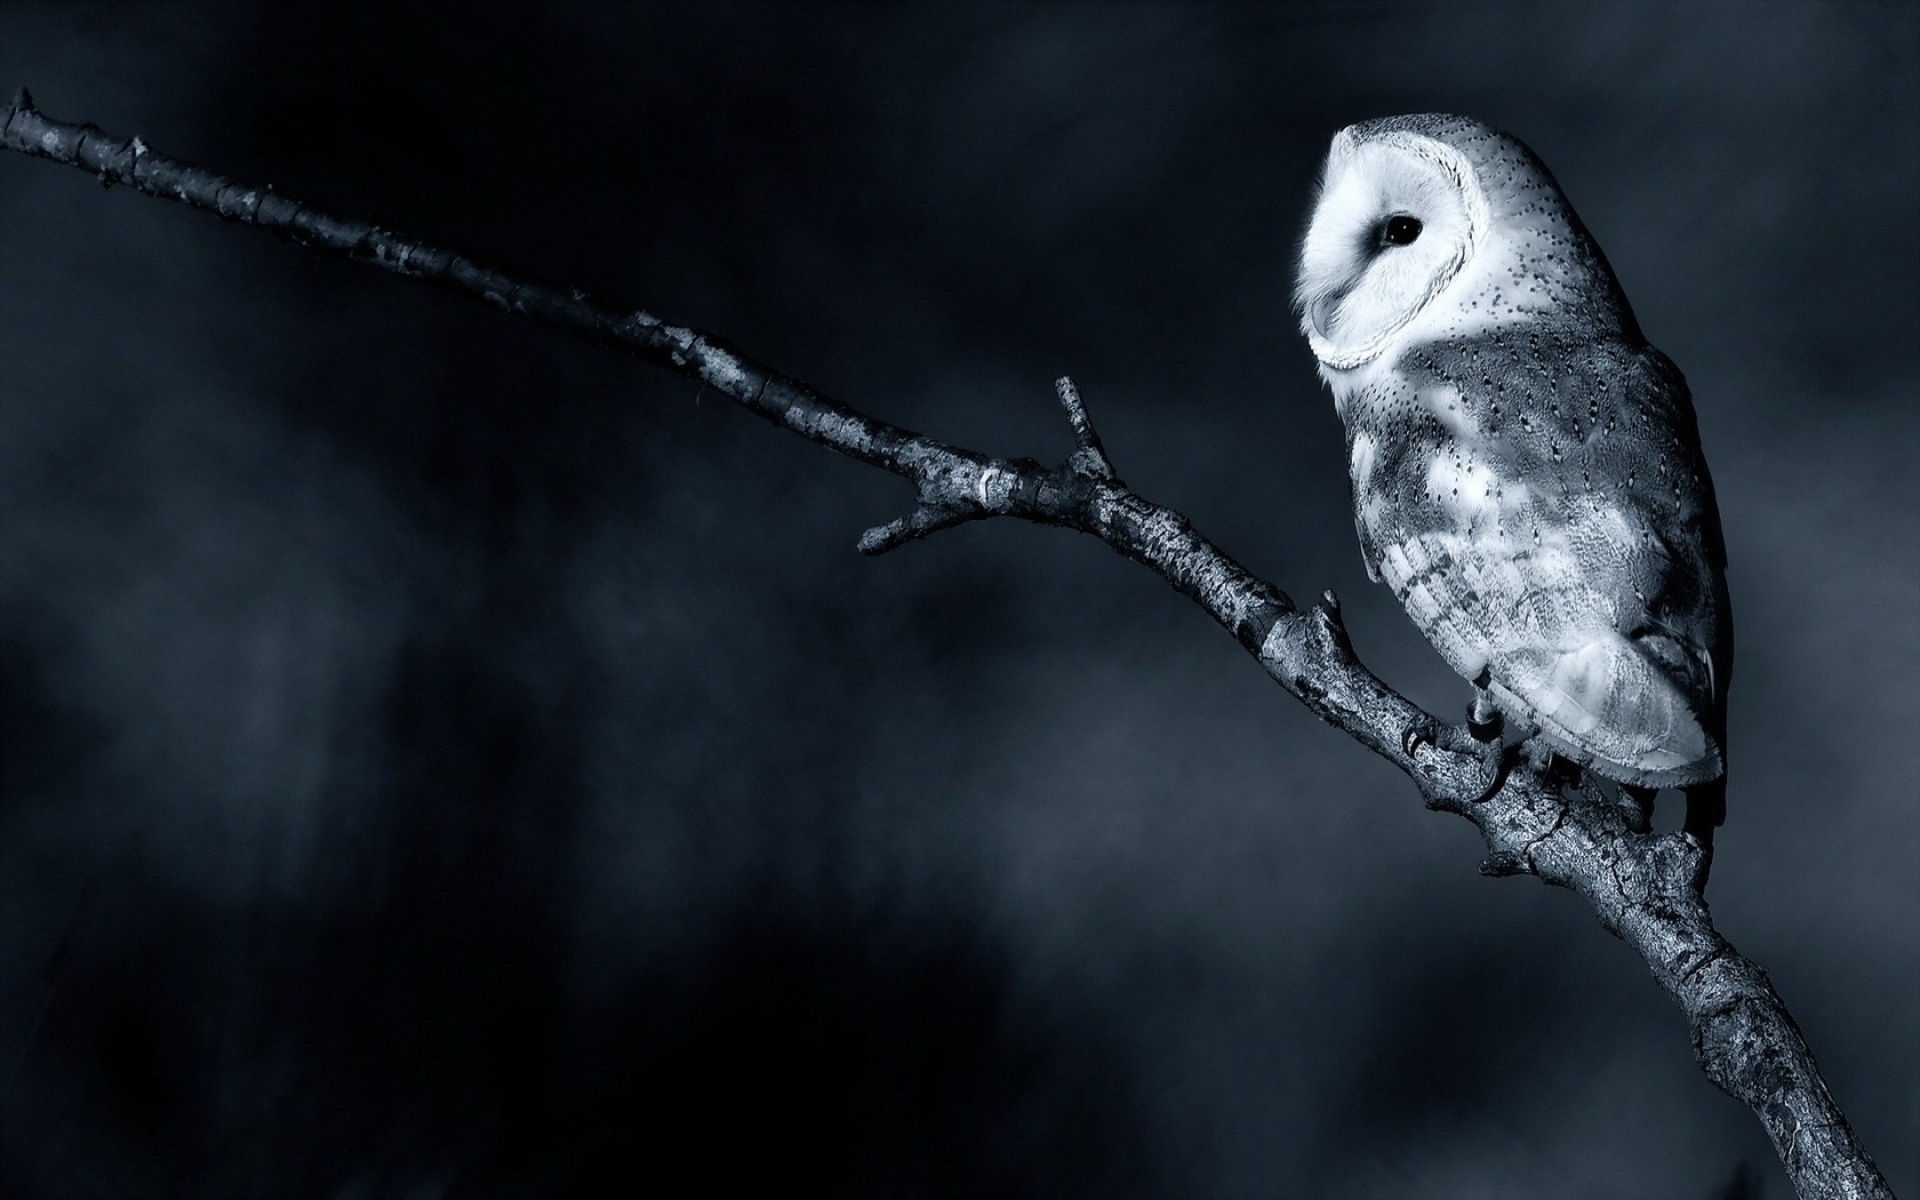 Owl Full HD Wallpaper and Background Image | 1920x1200 ...